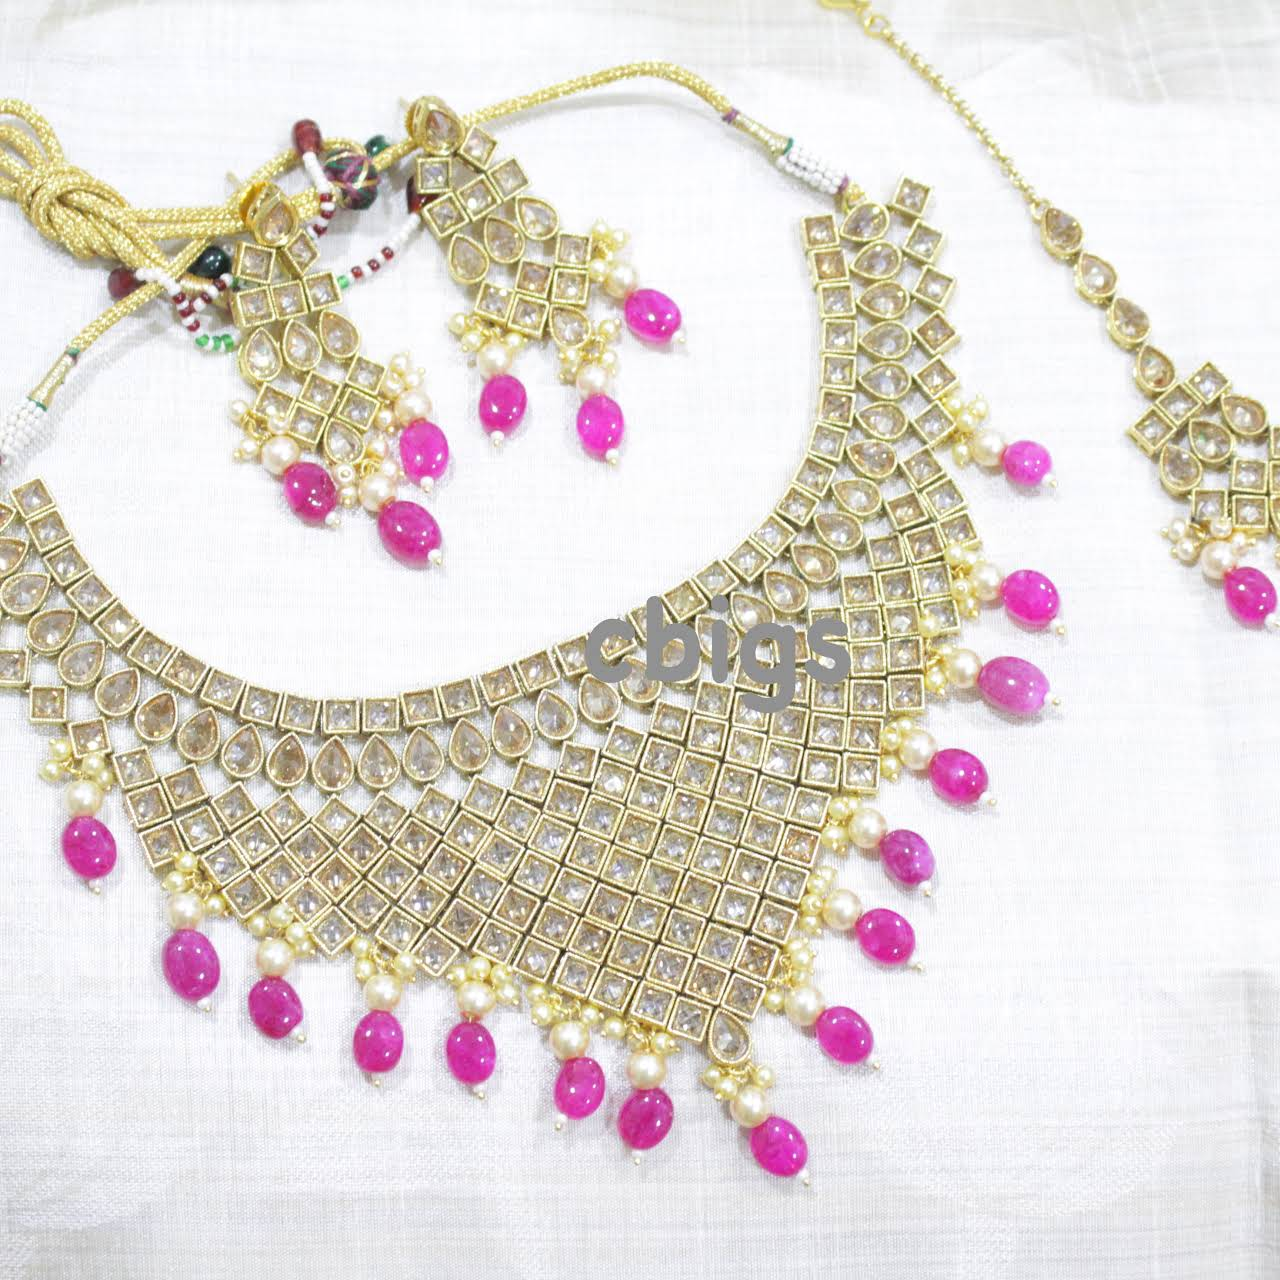 Cbigs fashion Jewellery - Jewelry Store in Chennai